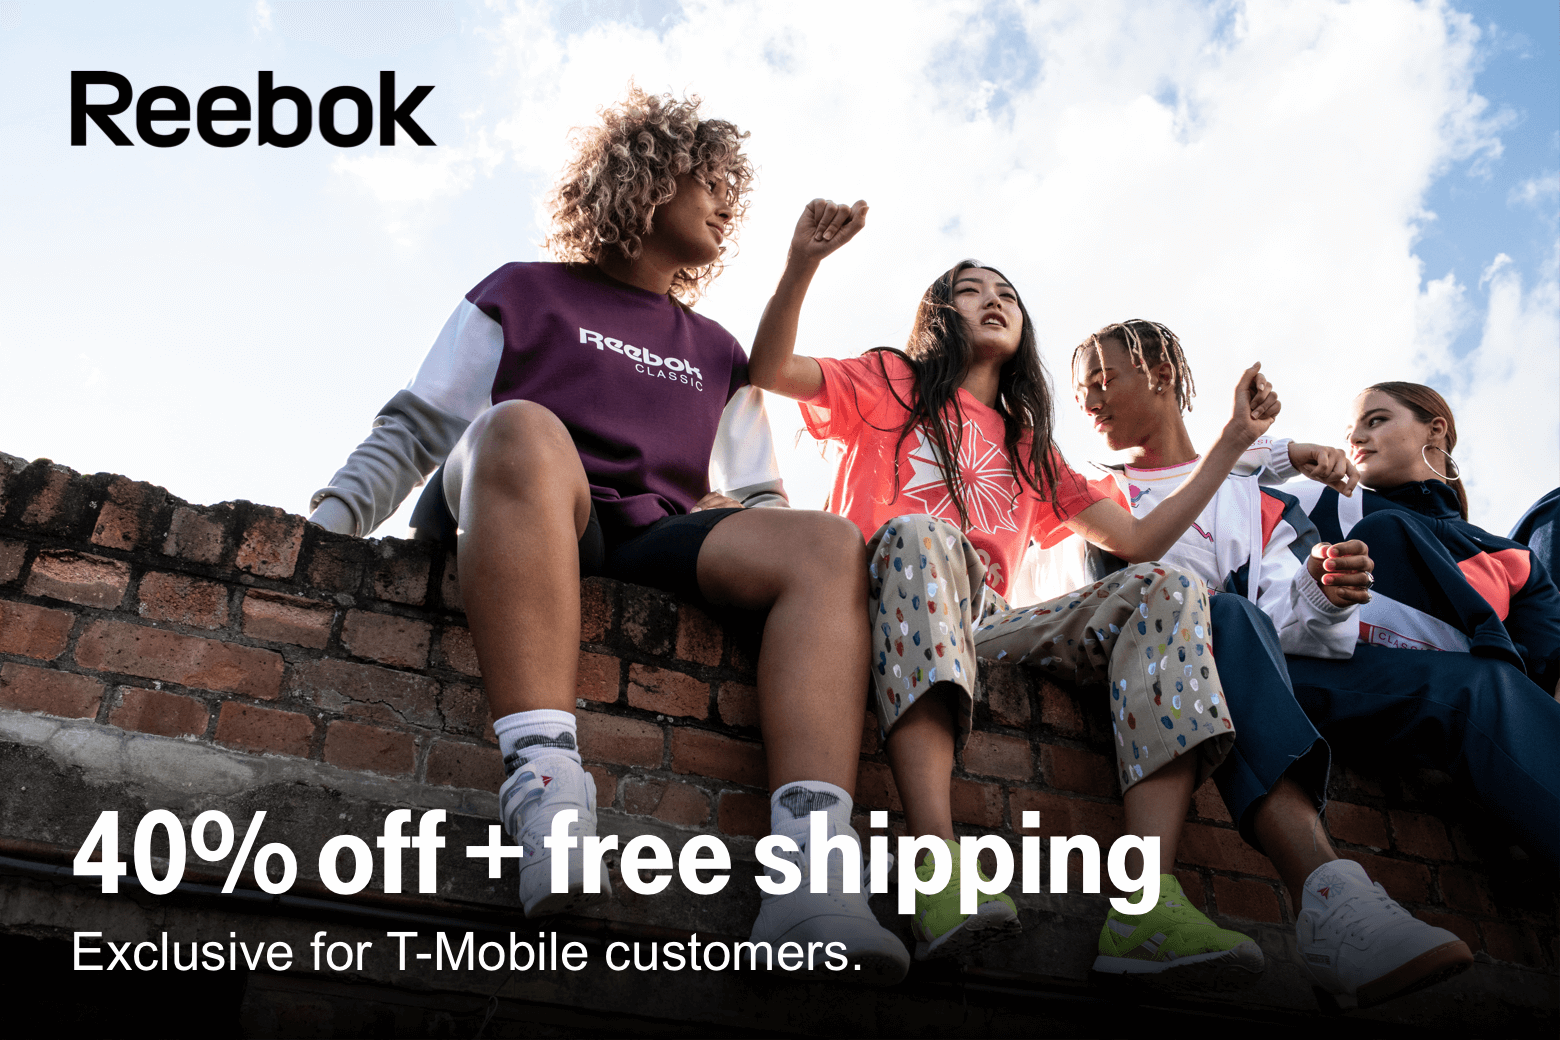 Reebok. 40% off +free shipping. Exclusive for T-Mobile customers.